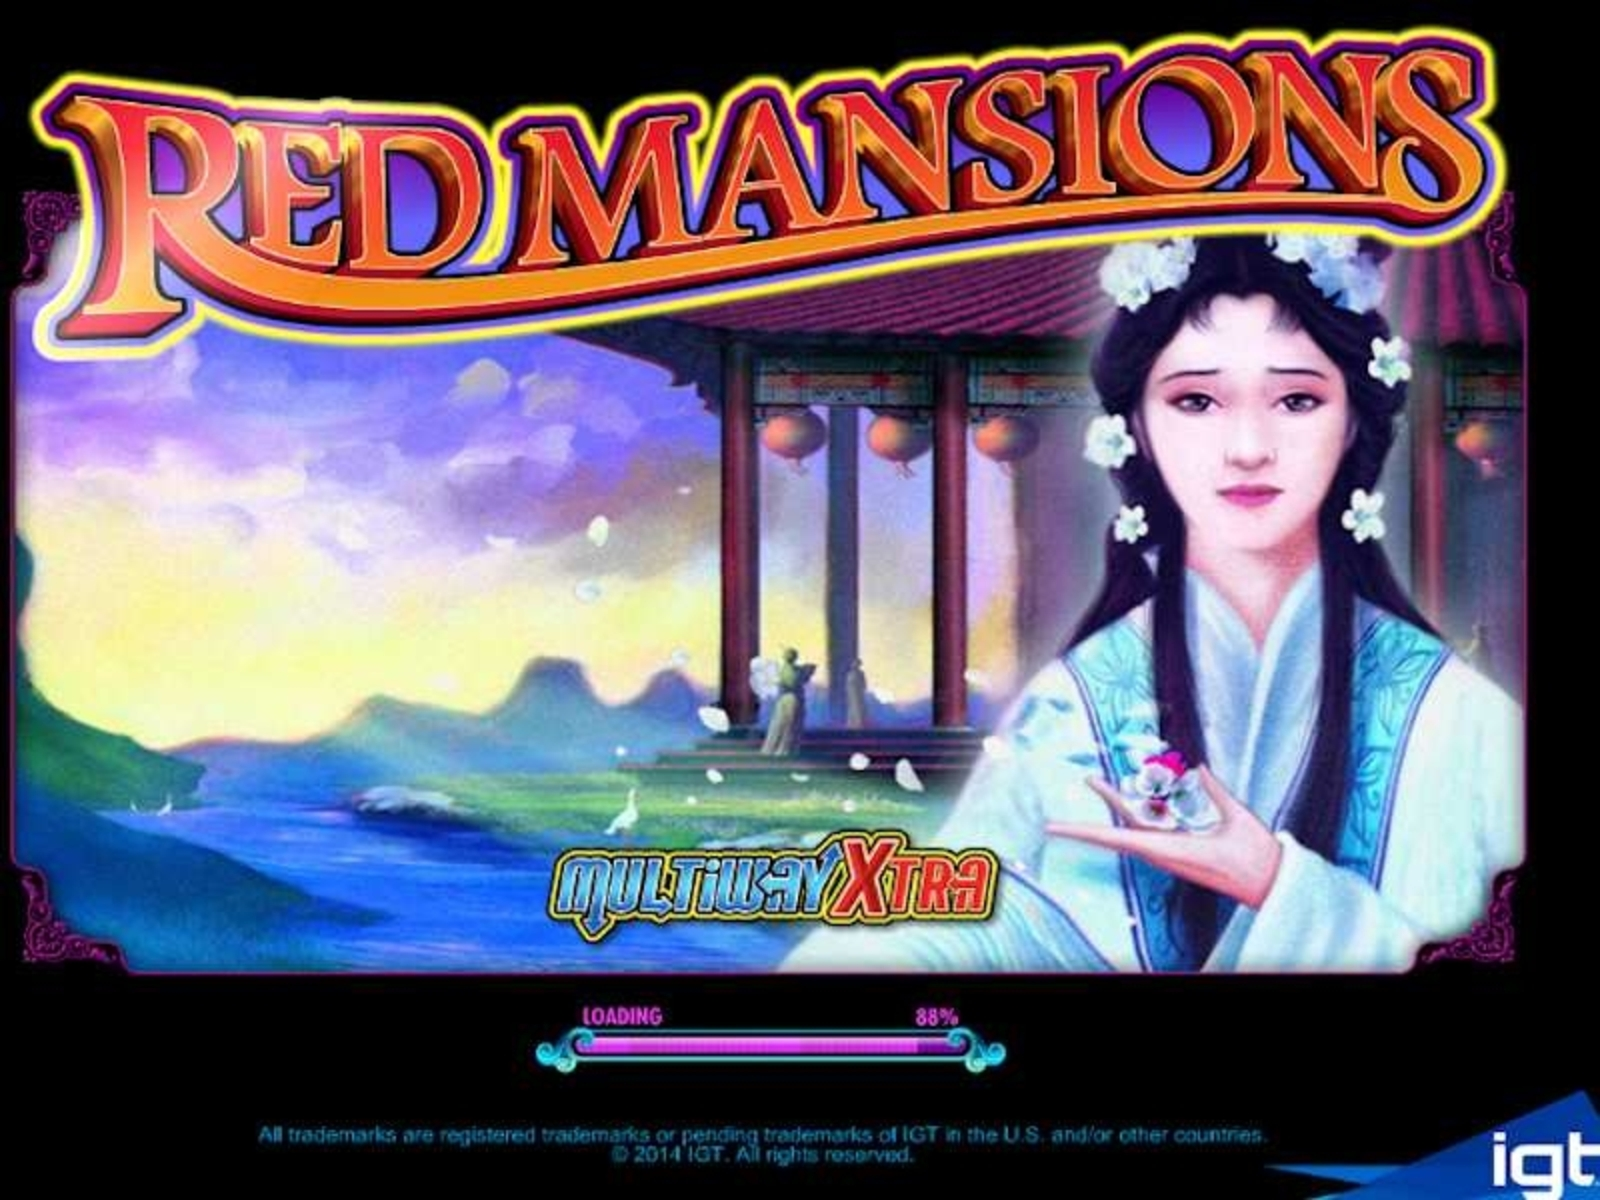 The Red Mansions Online Slot Demo Game by IGT